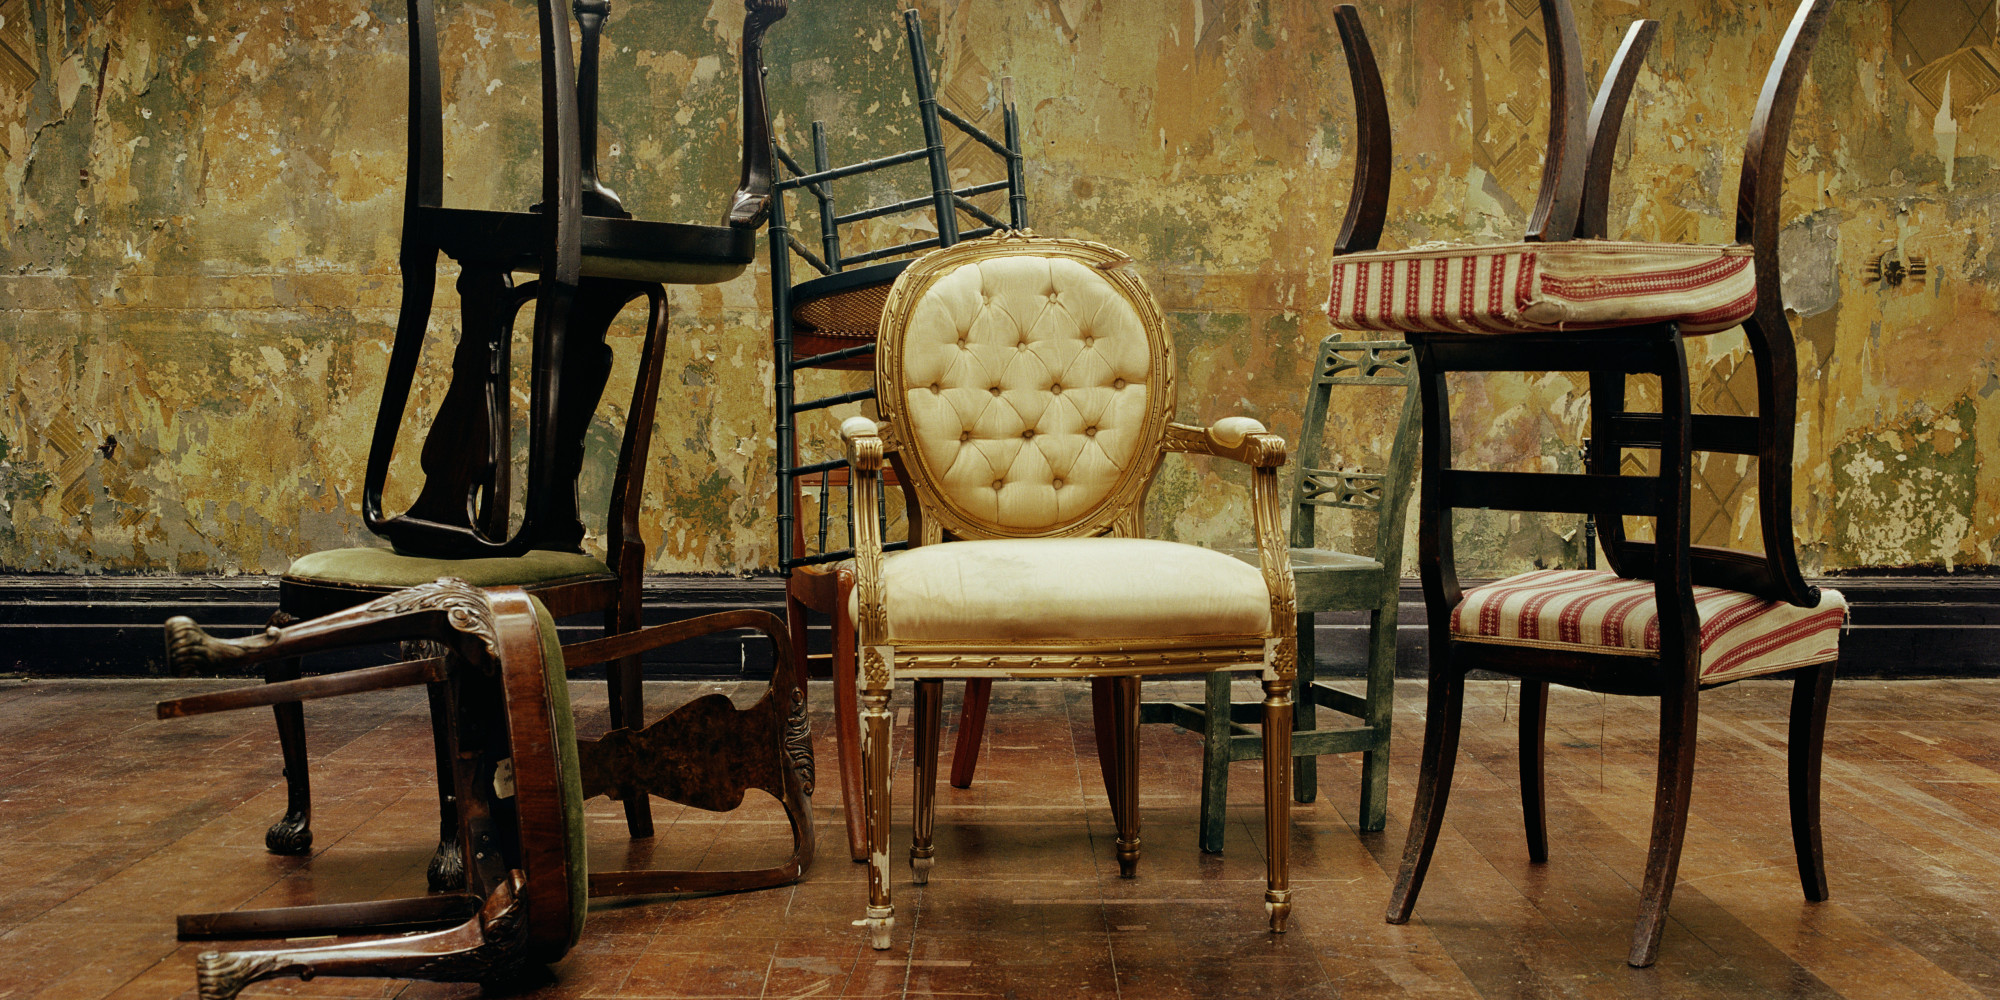 10 best websites for vintage furniture that you can browse from your living lxcmzhw